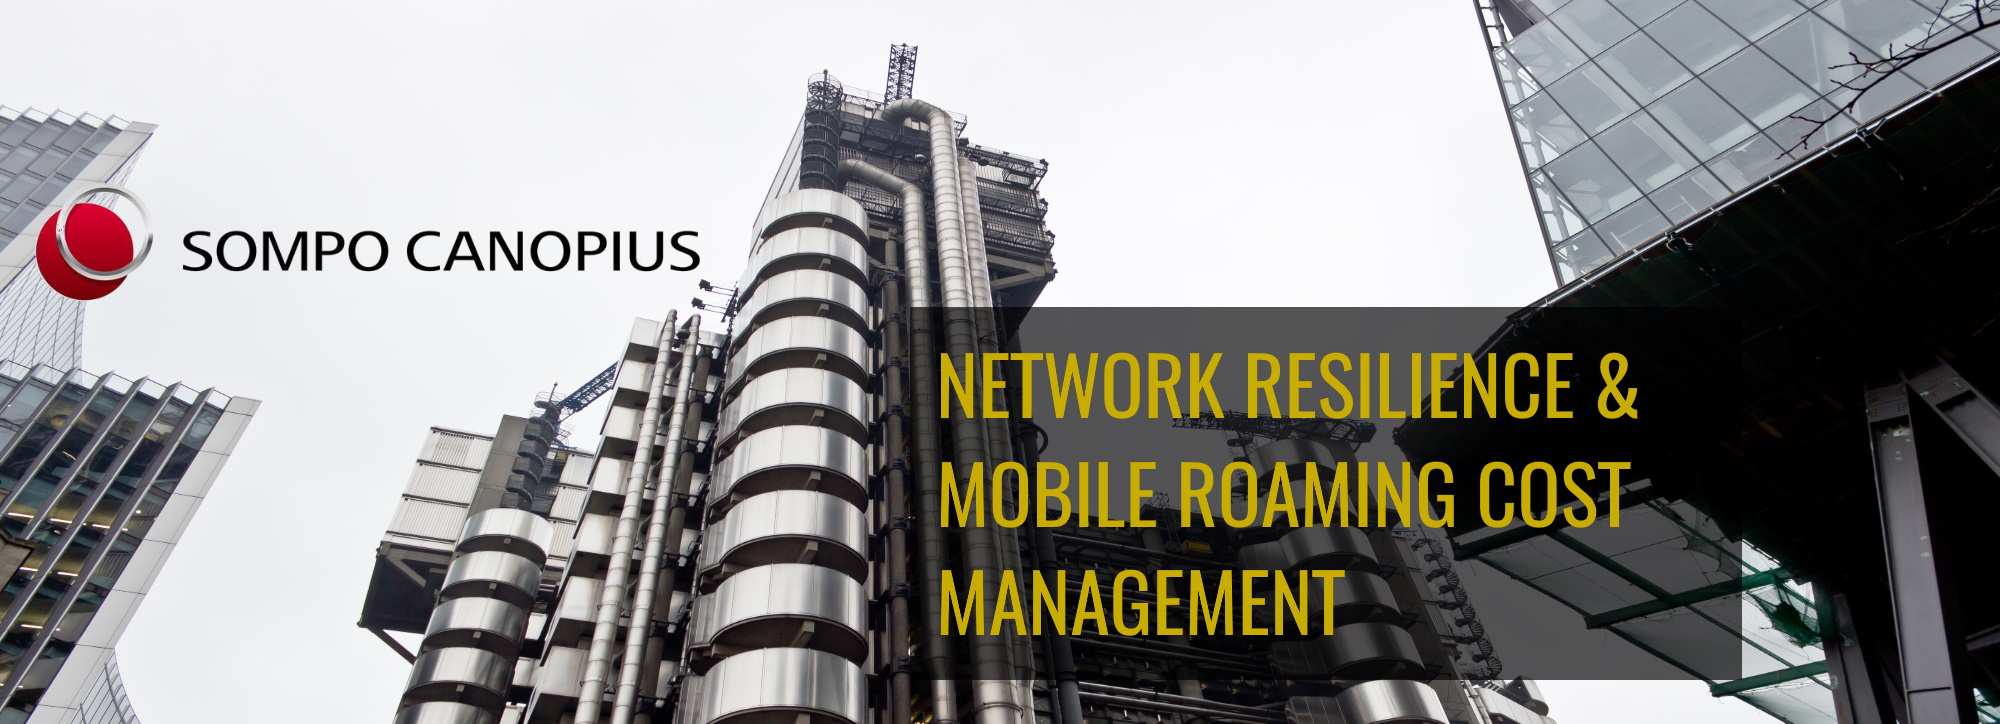 Network resilience and mobile roaming cost management case study